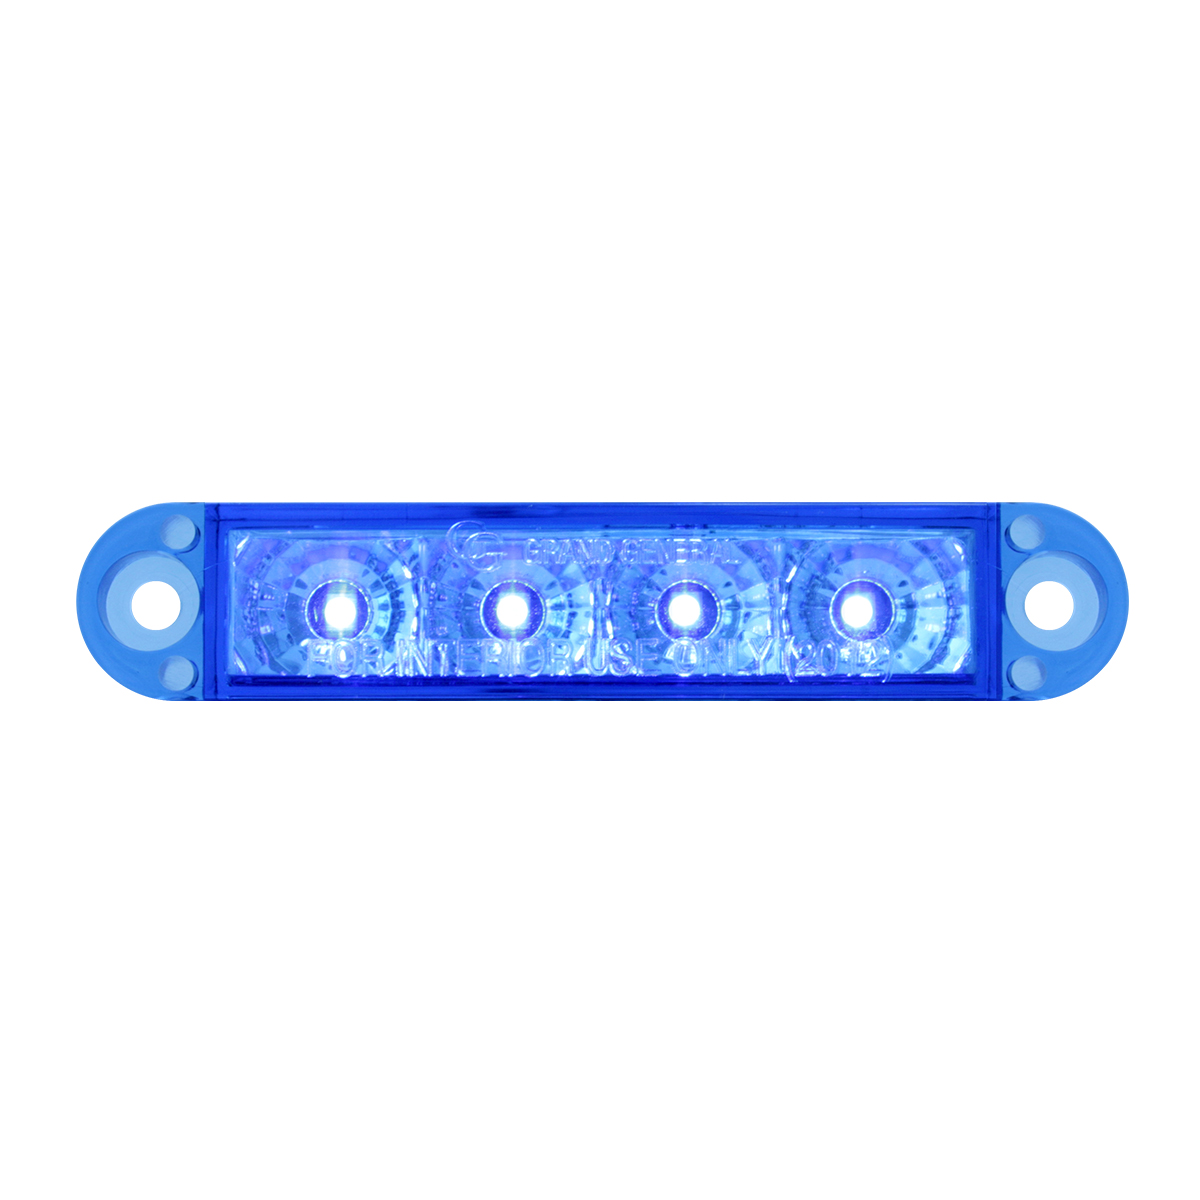 "76075 3.5"" Dual Function LED Light in Blue/Blue"